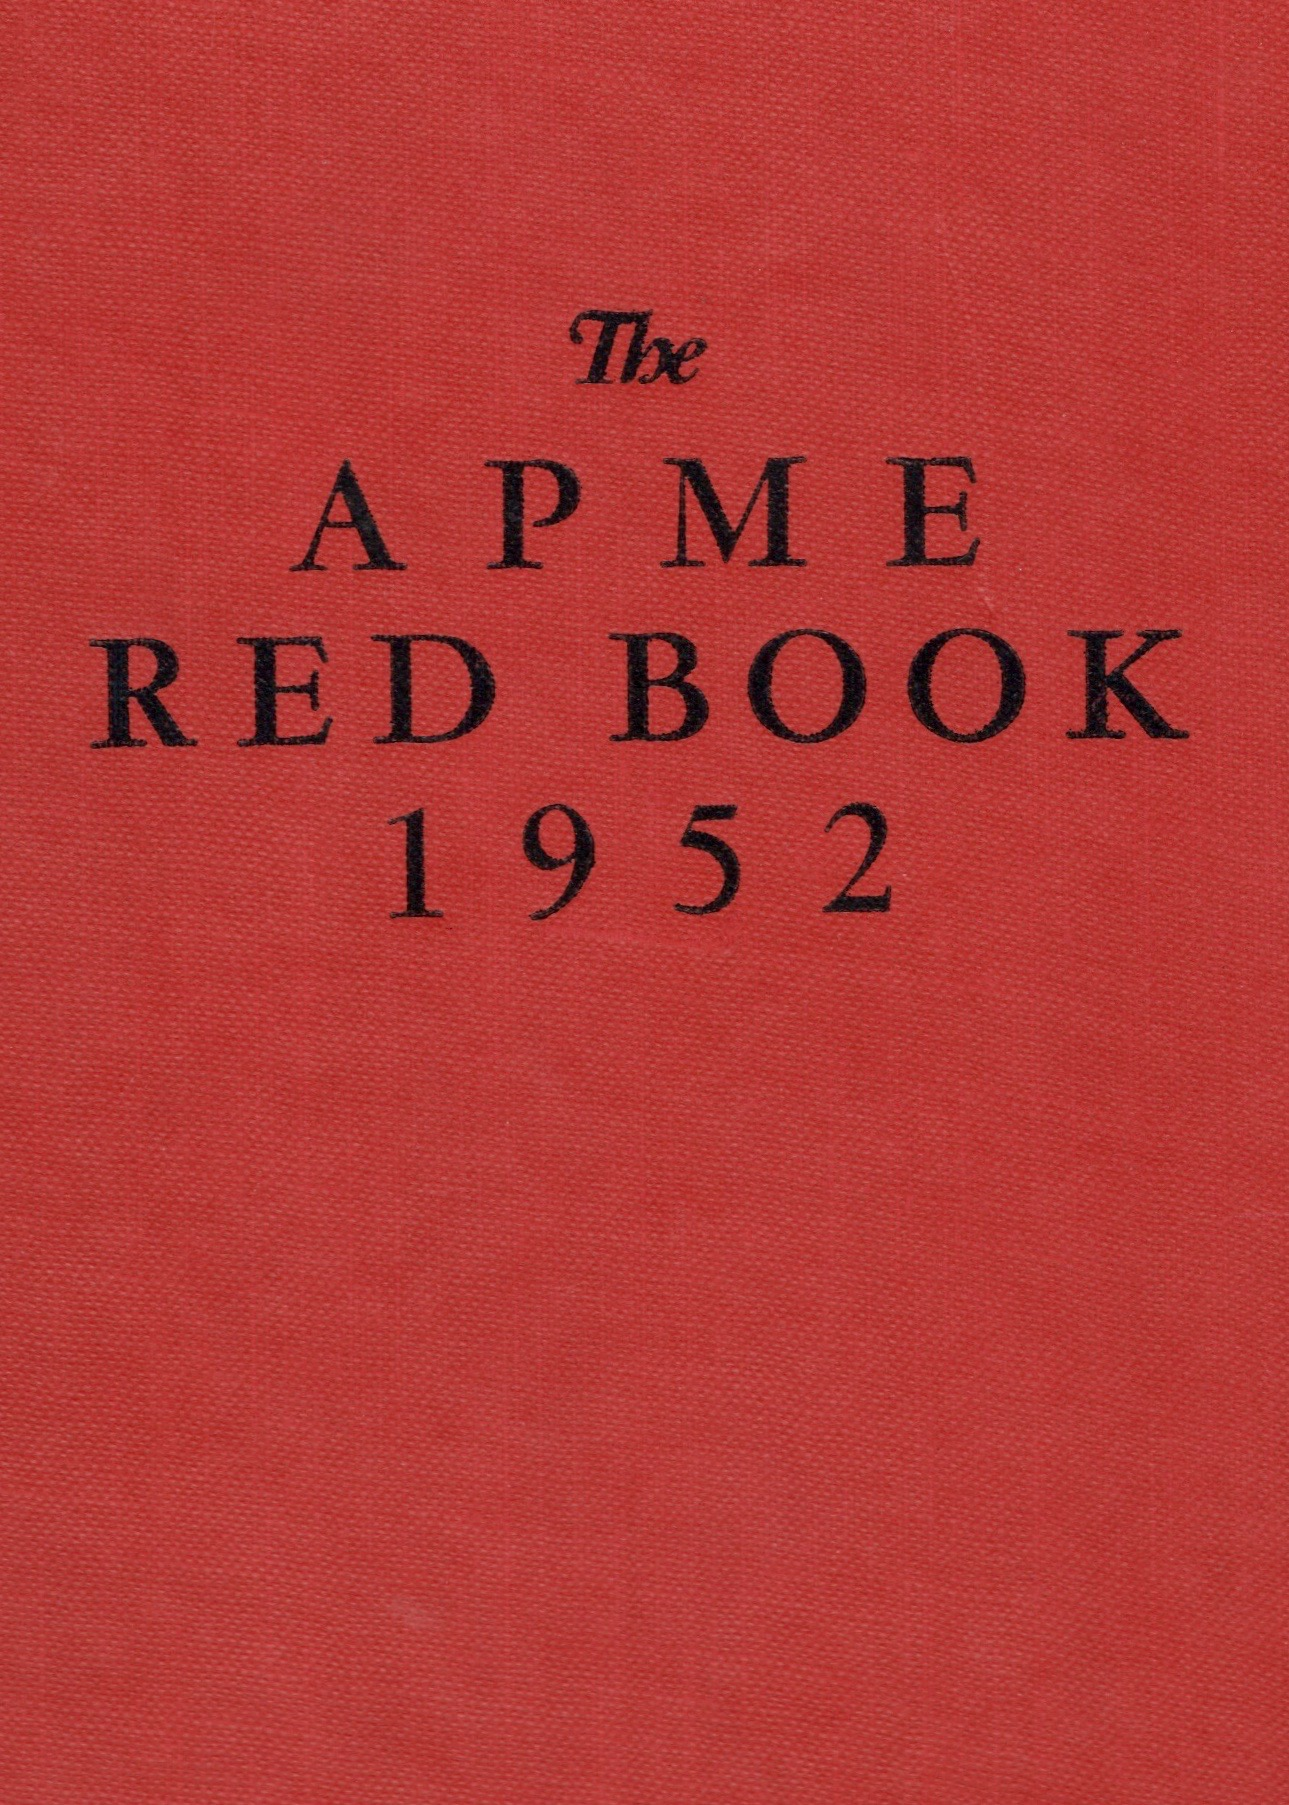 APME Red Book 1952 cover.jpeg